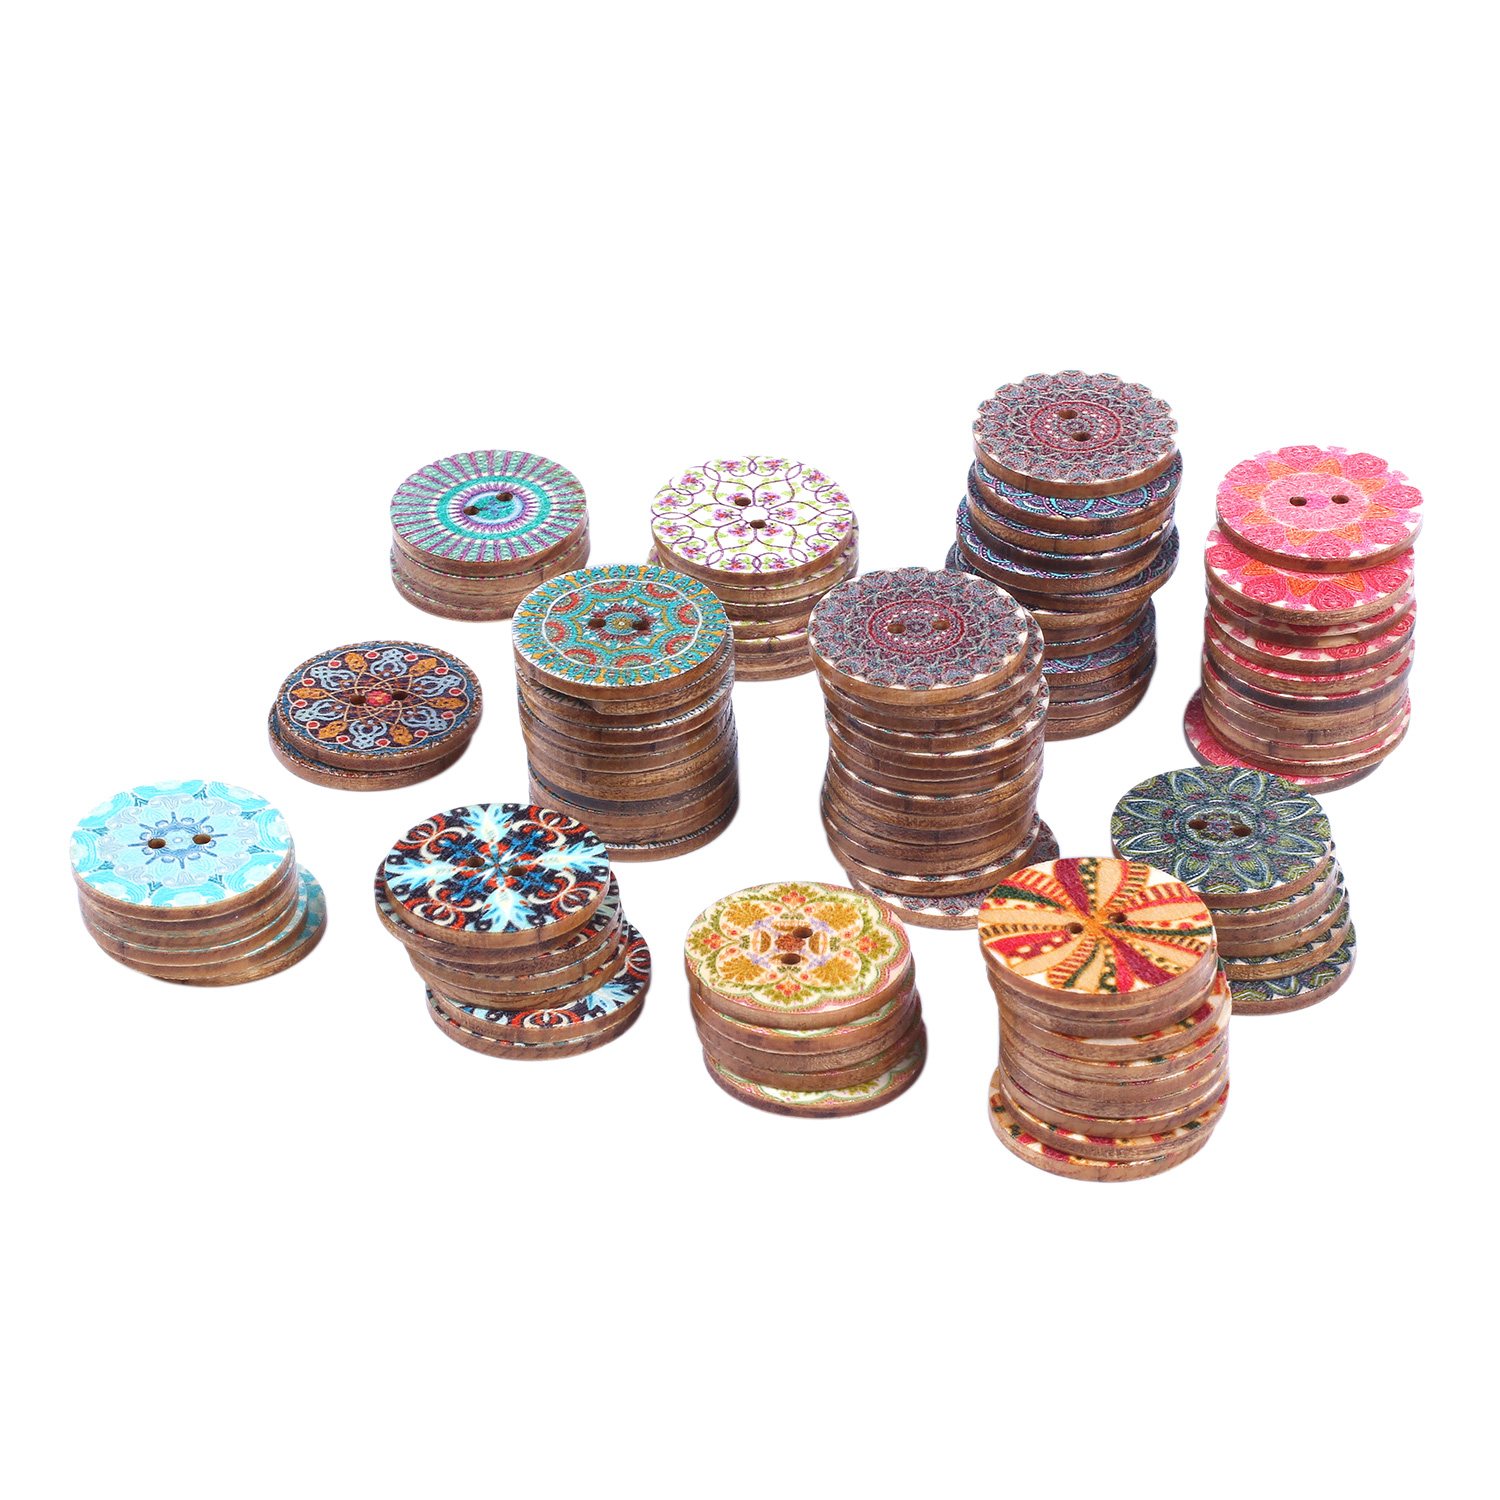 Mixed-Flower-Painting-Round-2-Holes-Wood-Wooden-Buttons-for-Sewing-Crafting-Z4I2 thumbnail 4